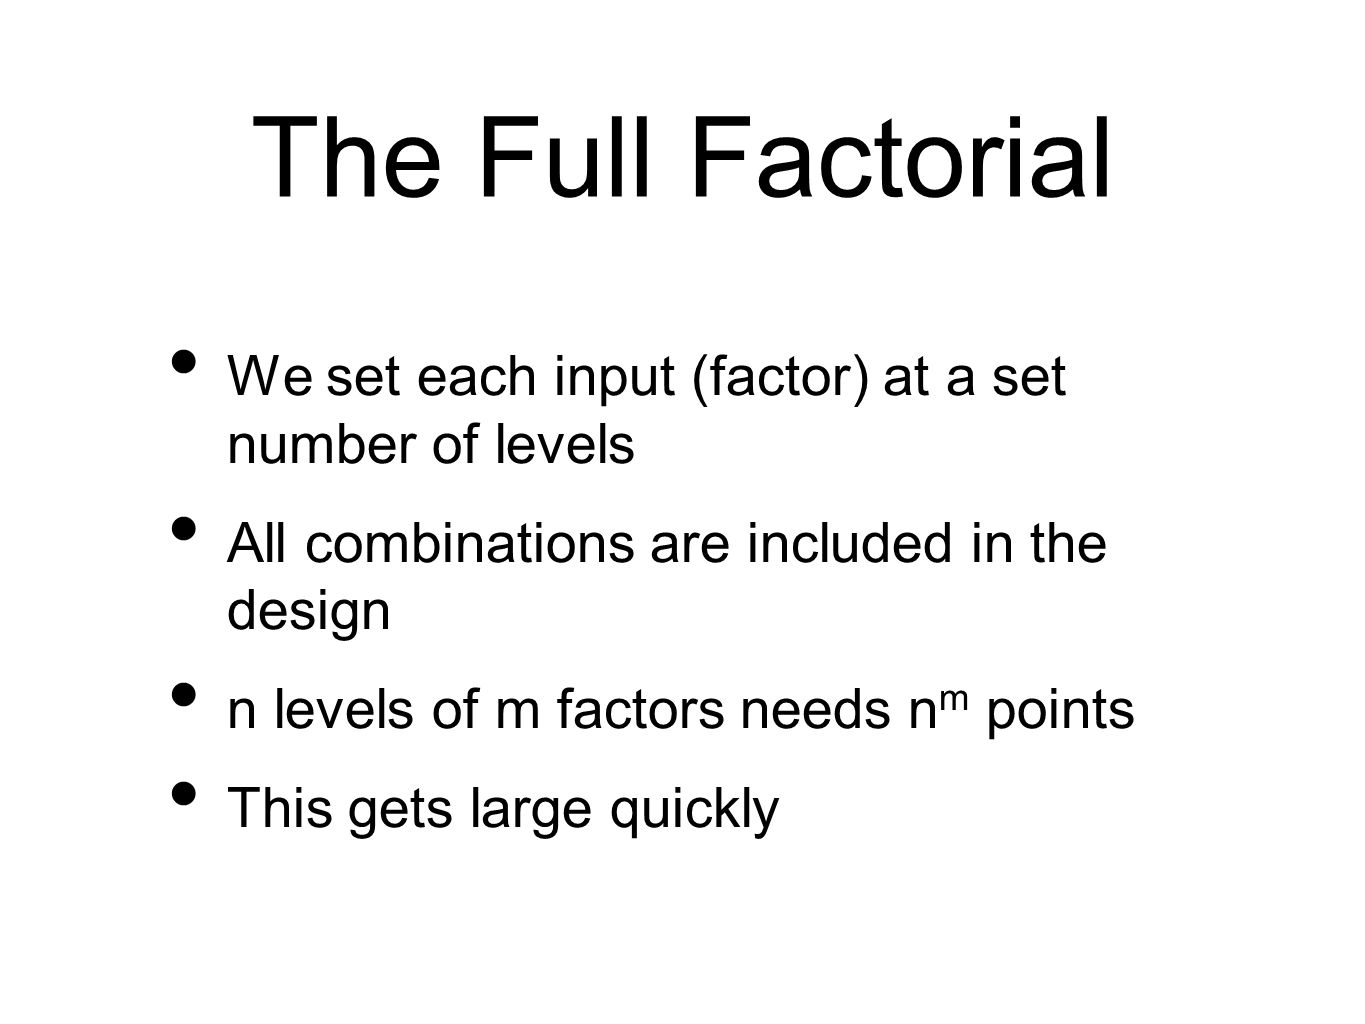 The Full Factorial We set each input (factor) at a set number of levels. All combinations are included in the design.